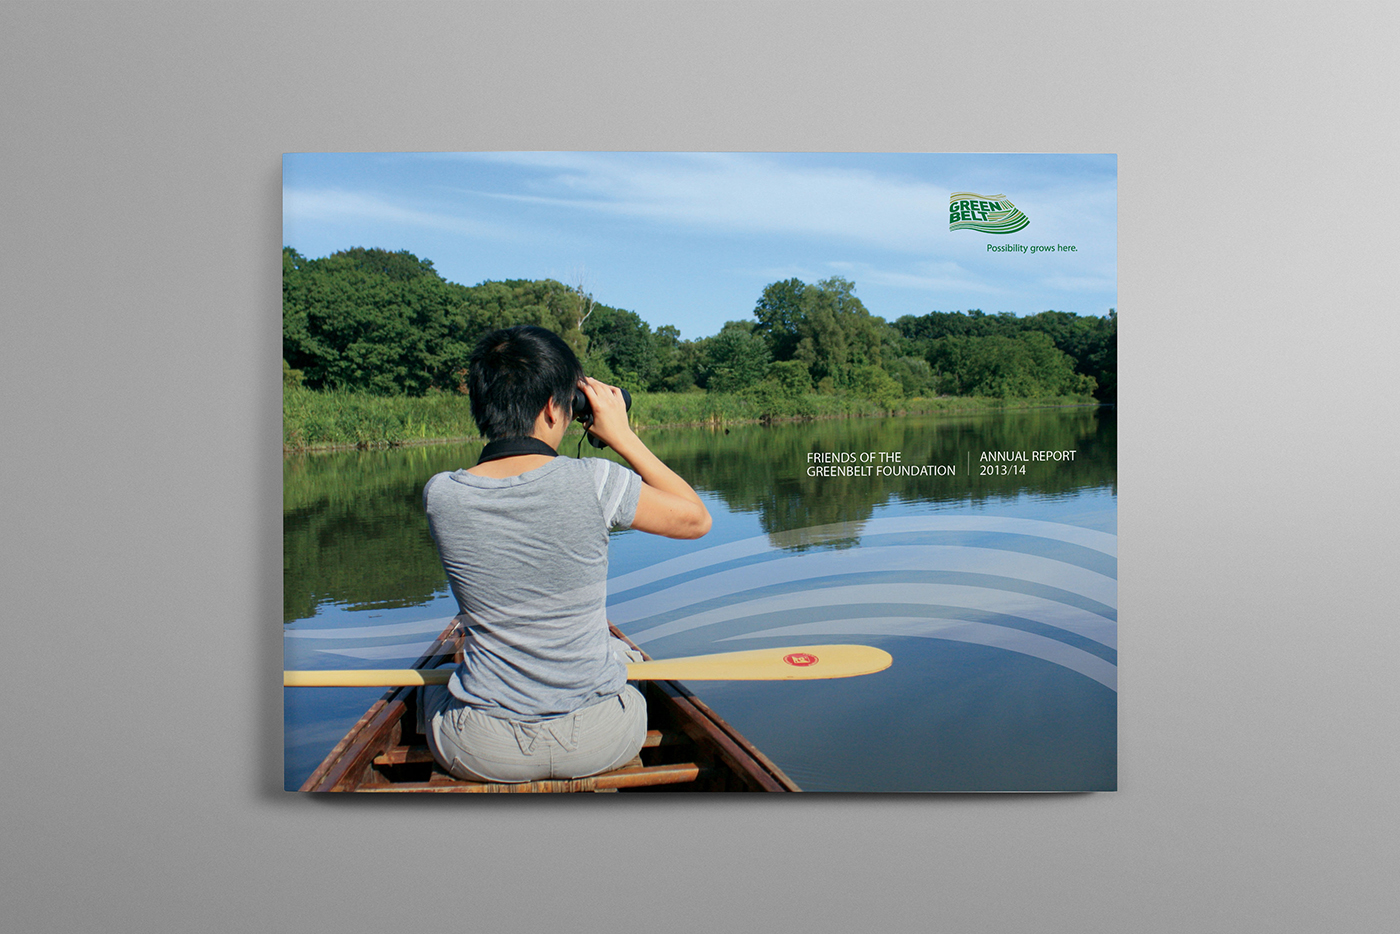 Woman canoeing and taking photos in lake in Canada's Greenbelt.